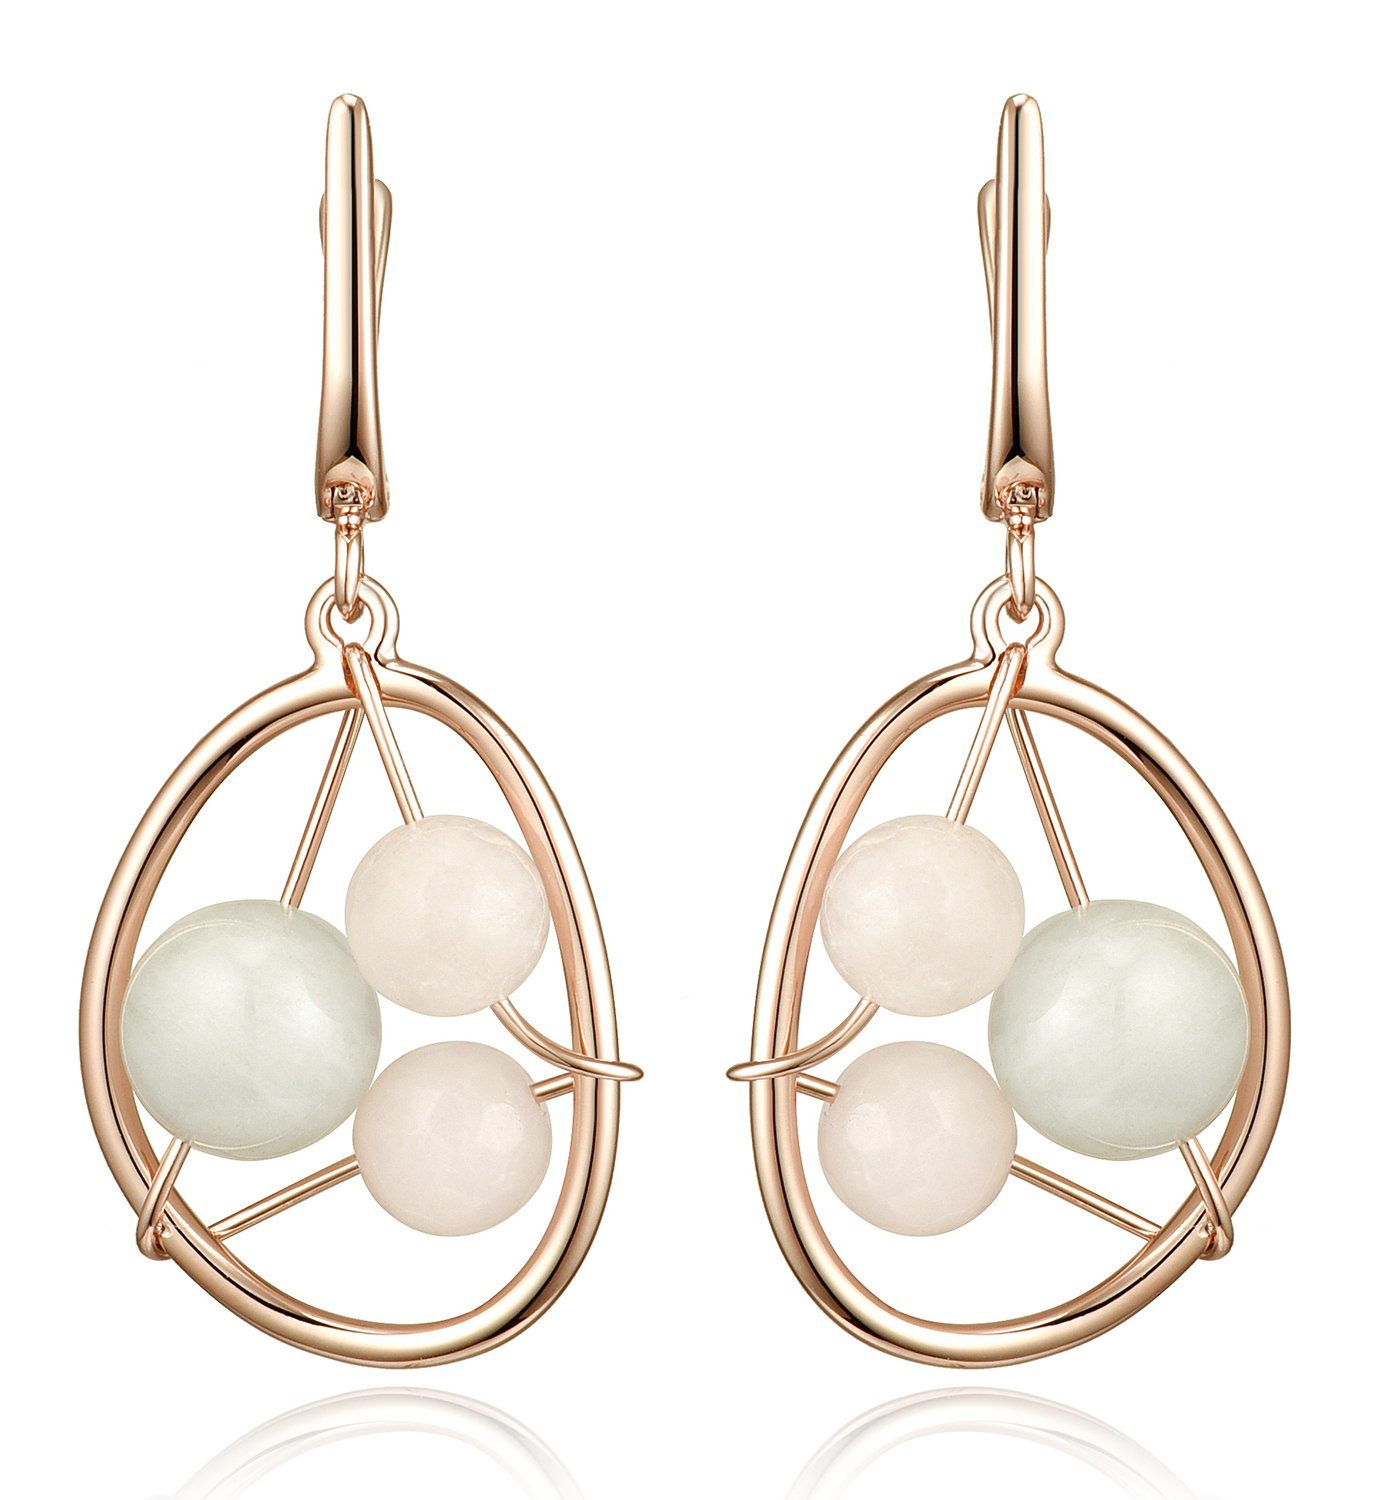 Lanfeny Rose Golden 925 Sterling Silver Hollow Dangle Earrings with Quartz and Moonstone Wire Winding